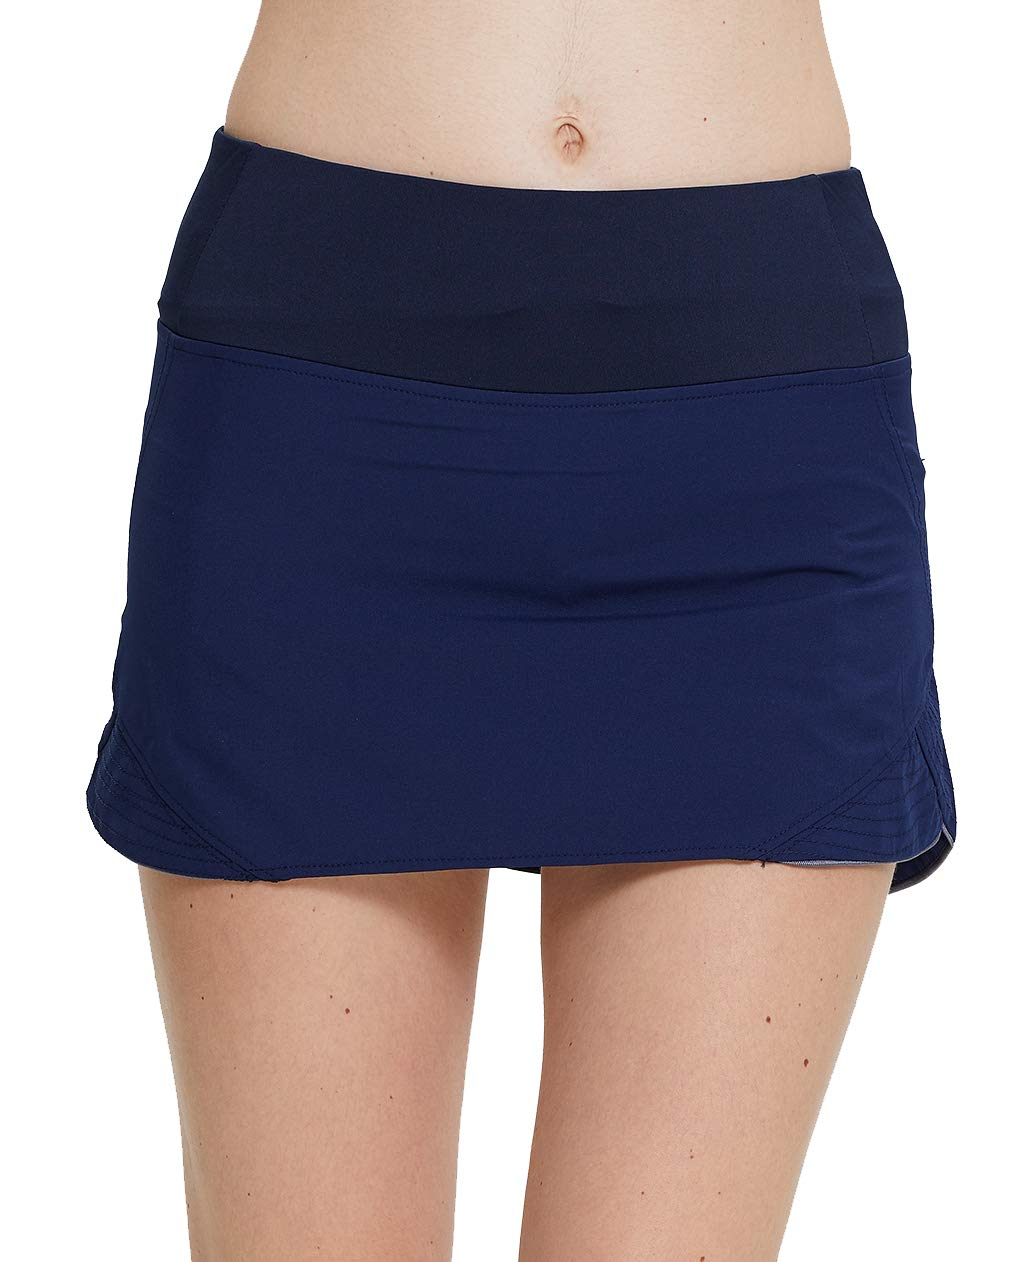 UDIY Women's Active Athletic Skort with Inner Pockets for Running Tennis Golf Badminton Workout, Navy by UDIY